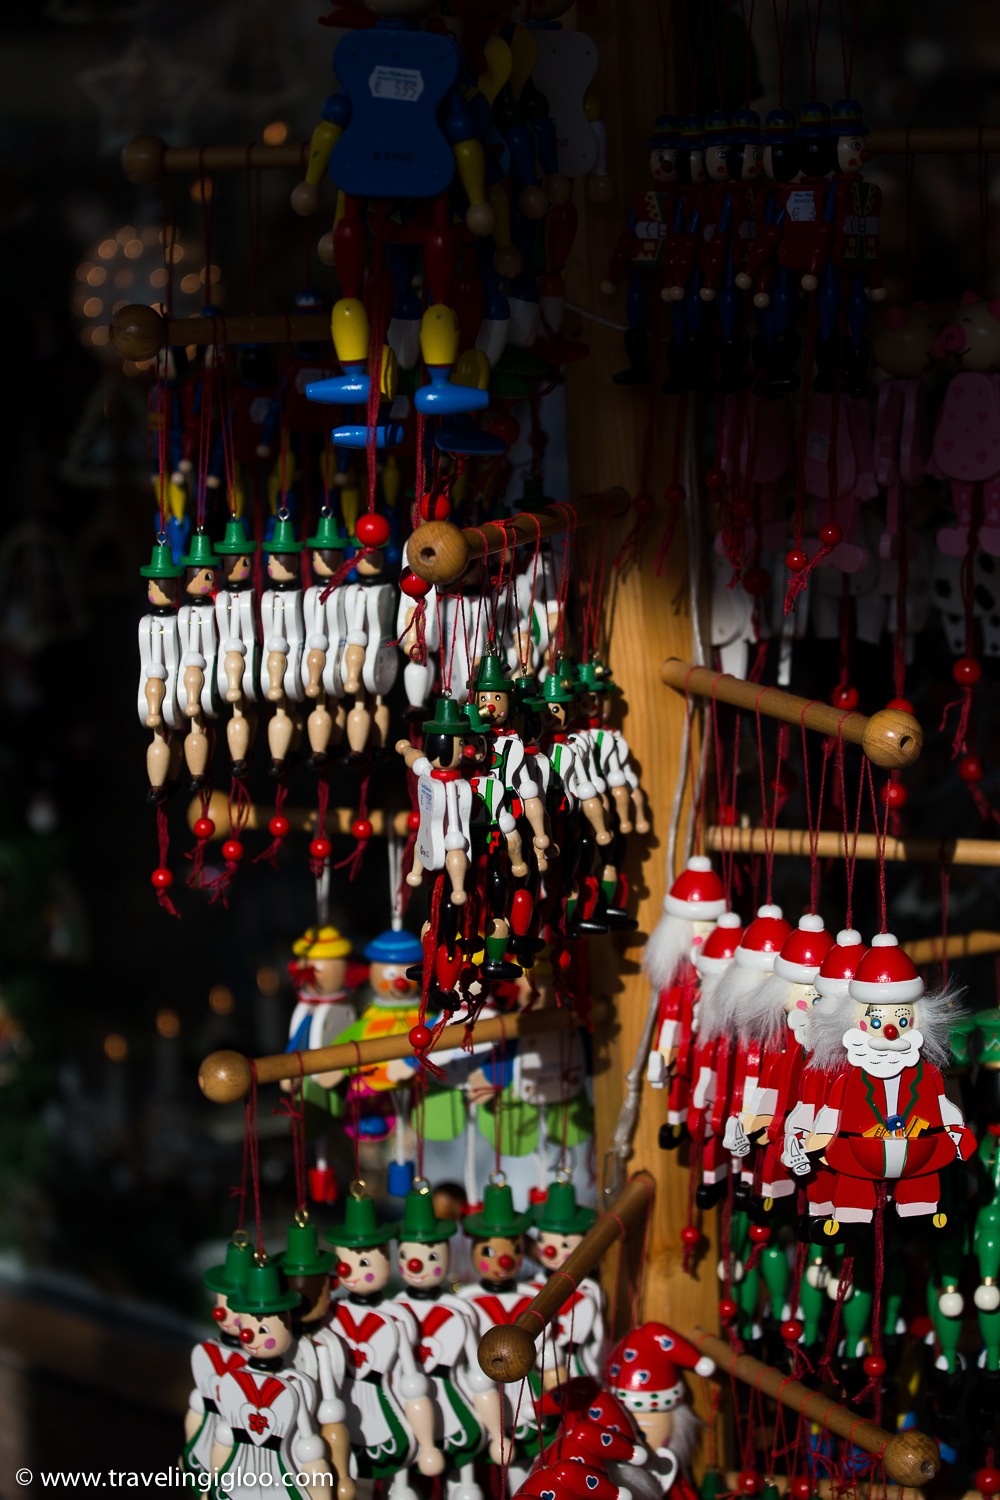 Christmas can be seen all around the city 365 days a year